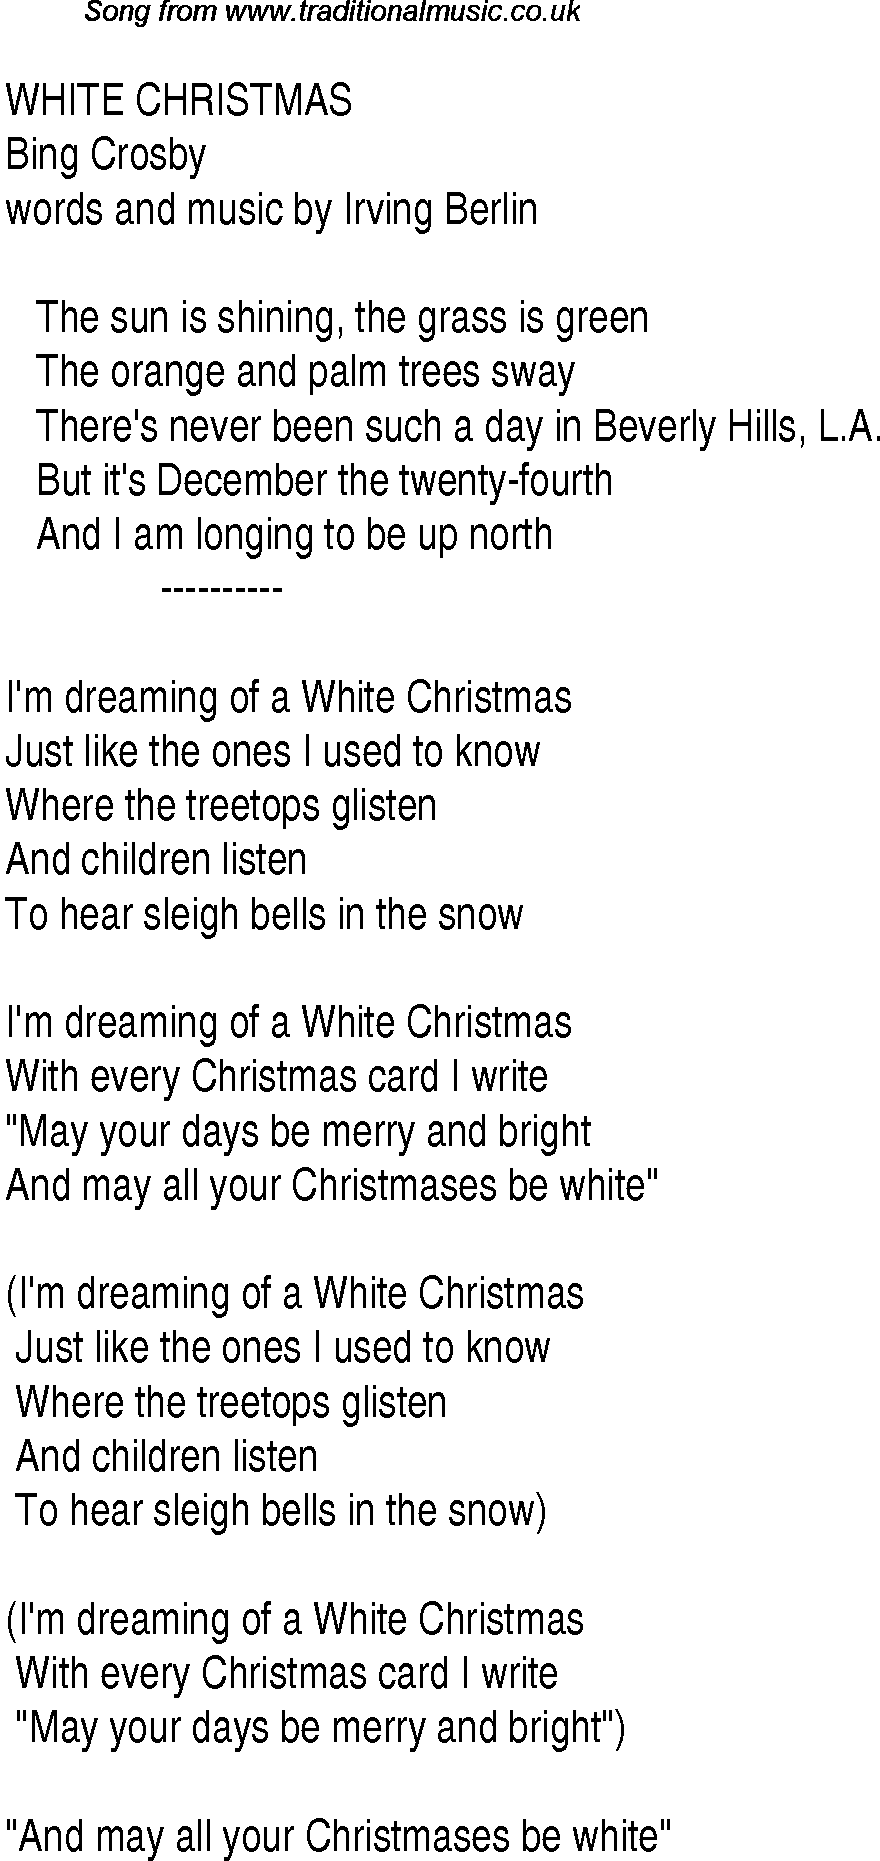 white christmas lyrics this wallpapers